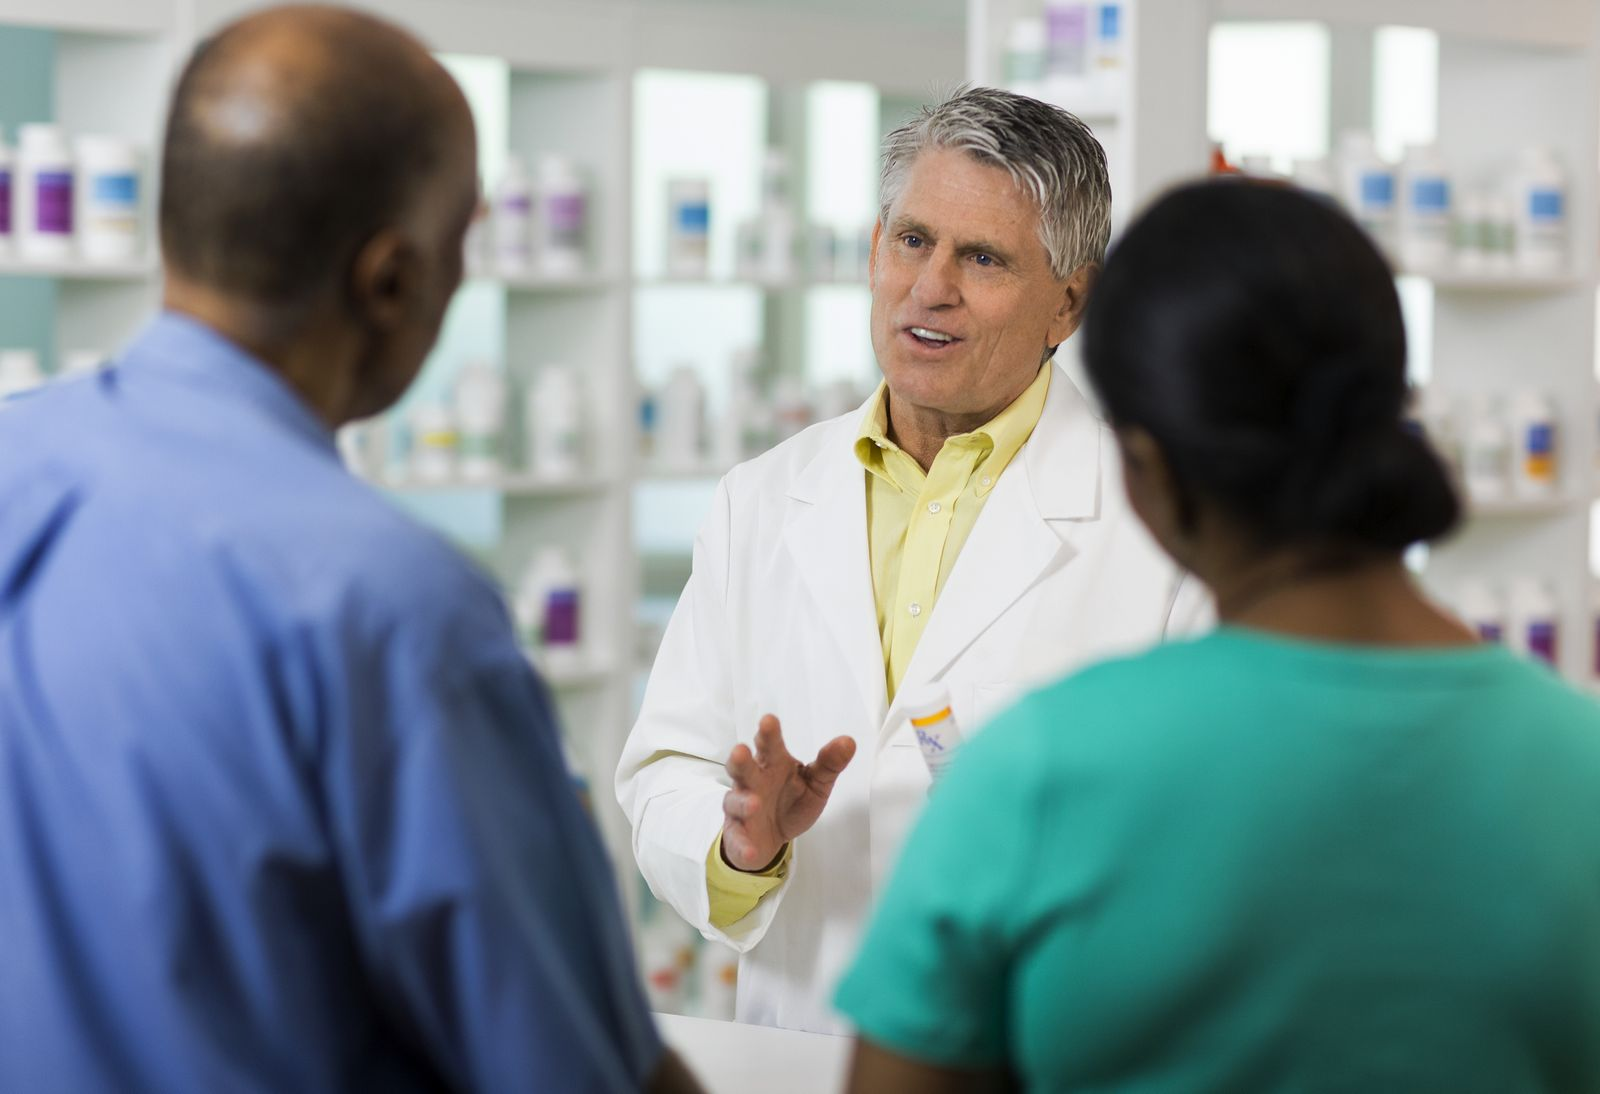 national association of area agencies on aging in collaboration walgreens is implementing a national initiative to provide medicare counselors and consumers educational materials